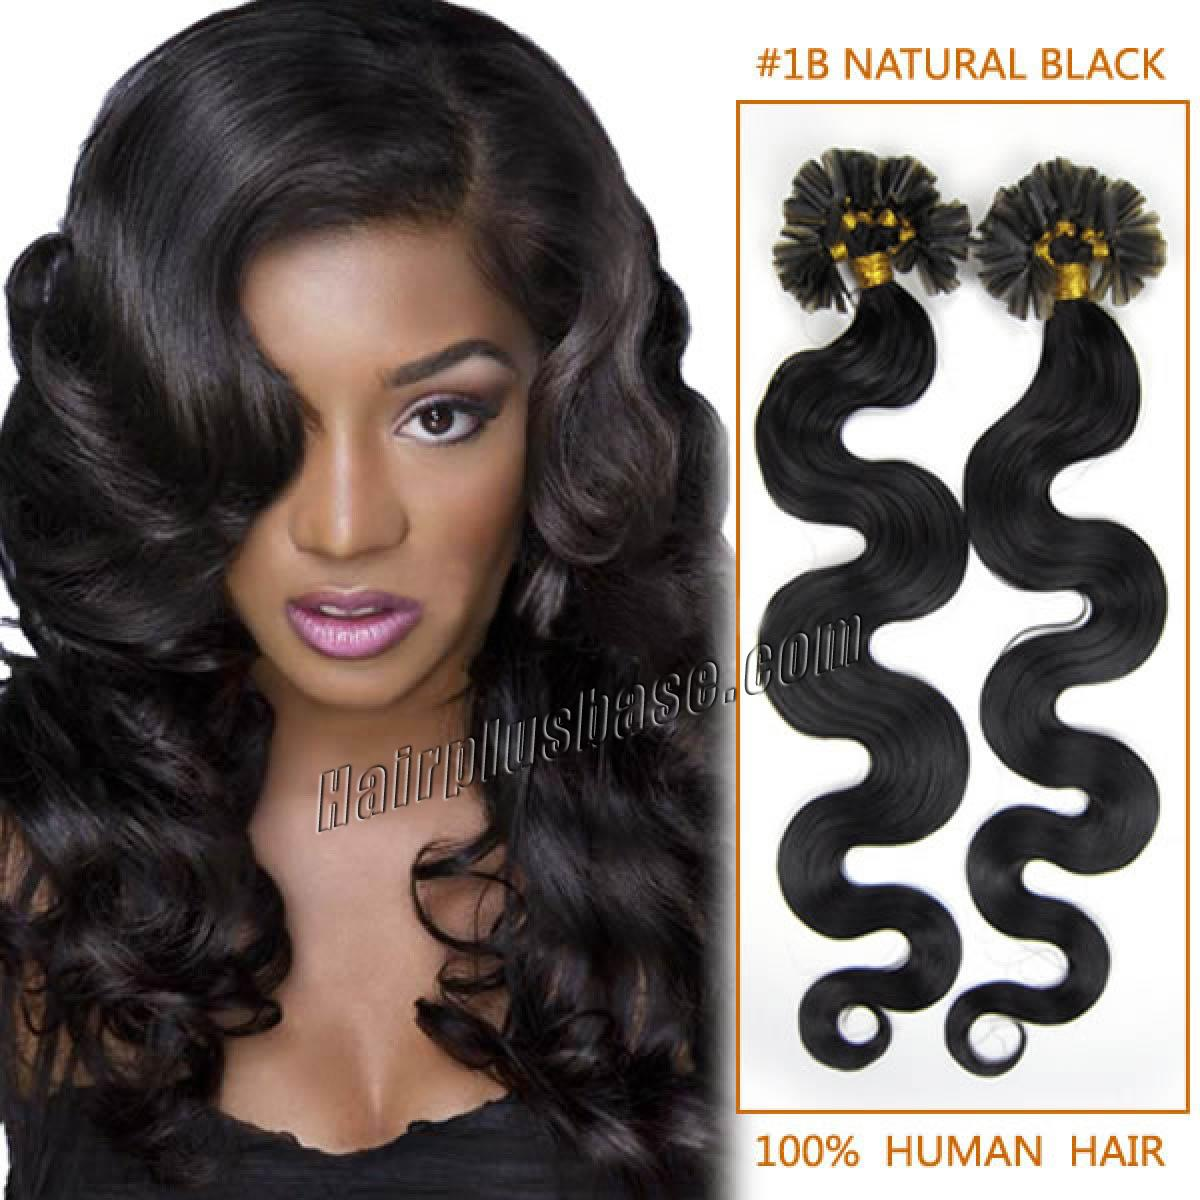 Remy Hair Weave  Hair Extensions  Wigs  Hair Care